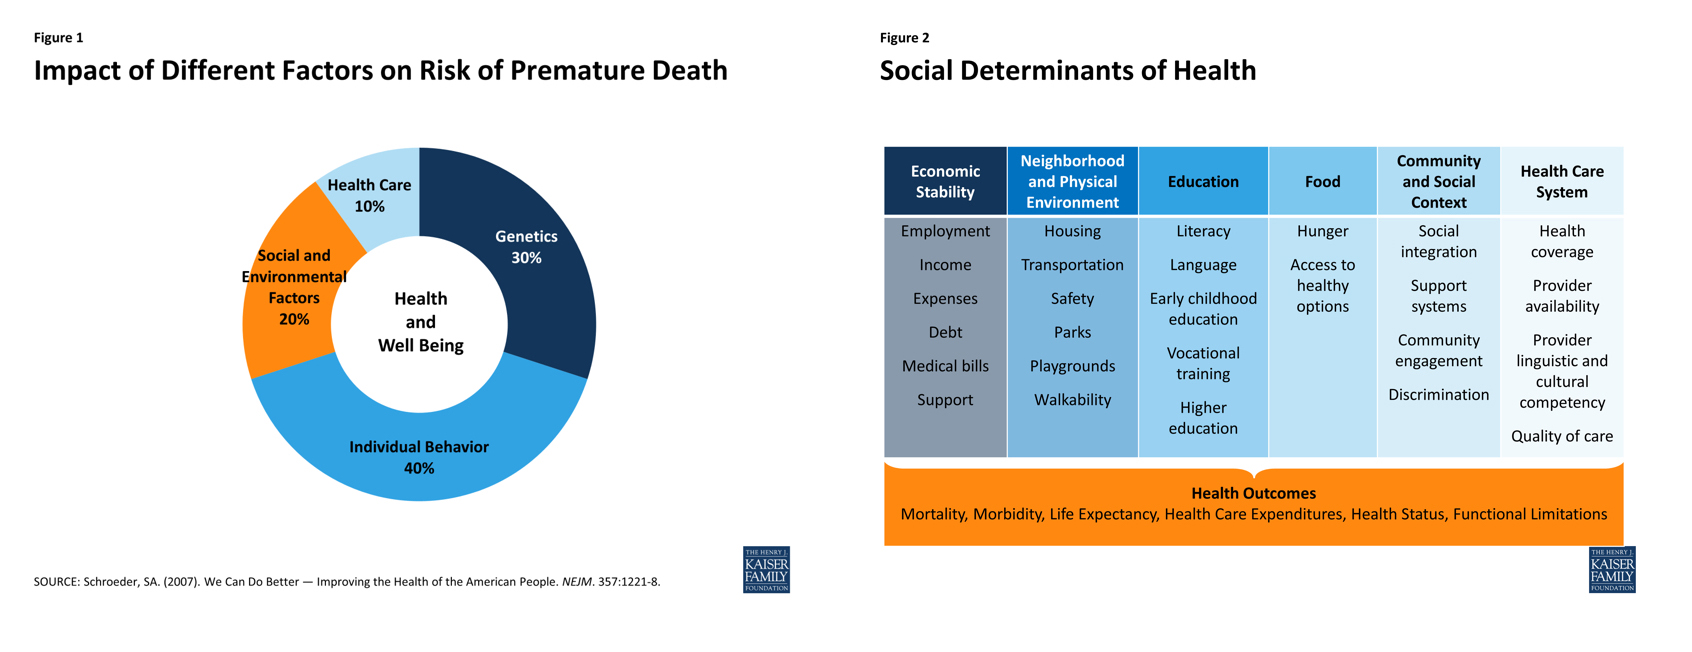 Image source:  http://kff.org/disparities-policy/issue-brief/beyond-health-care-the-role-of-social-determinants-in-promoting-health-and-health-equity/